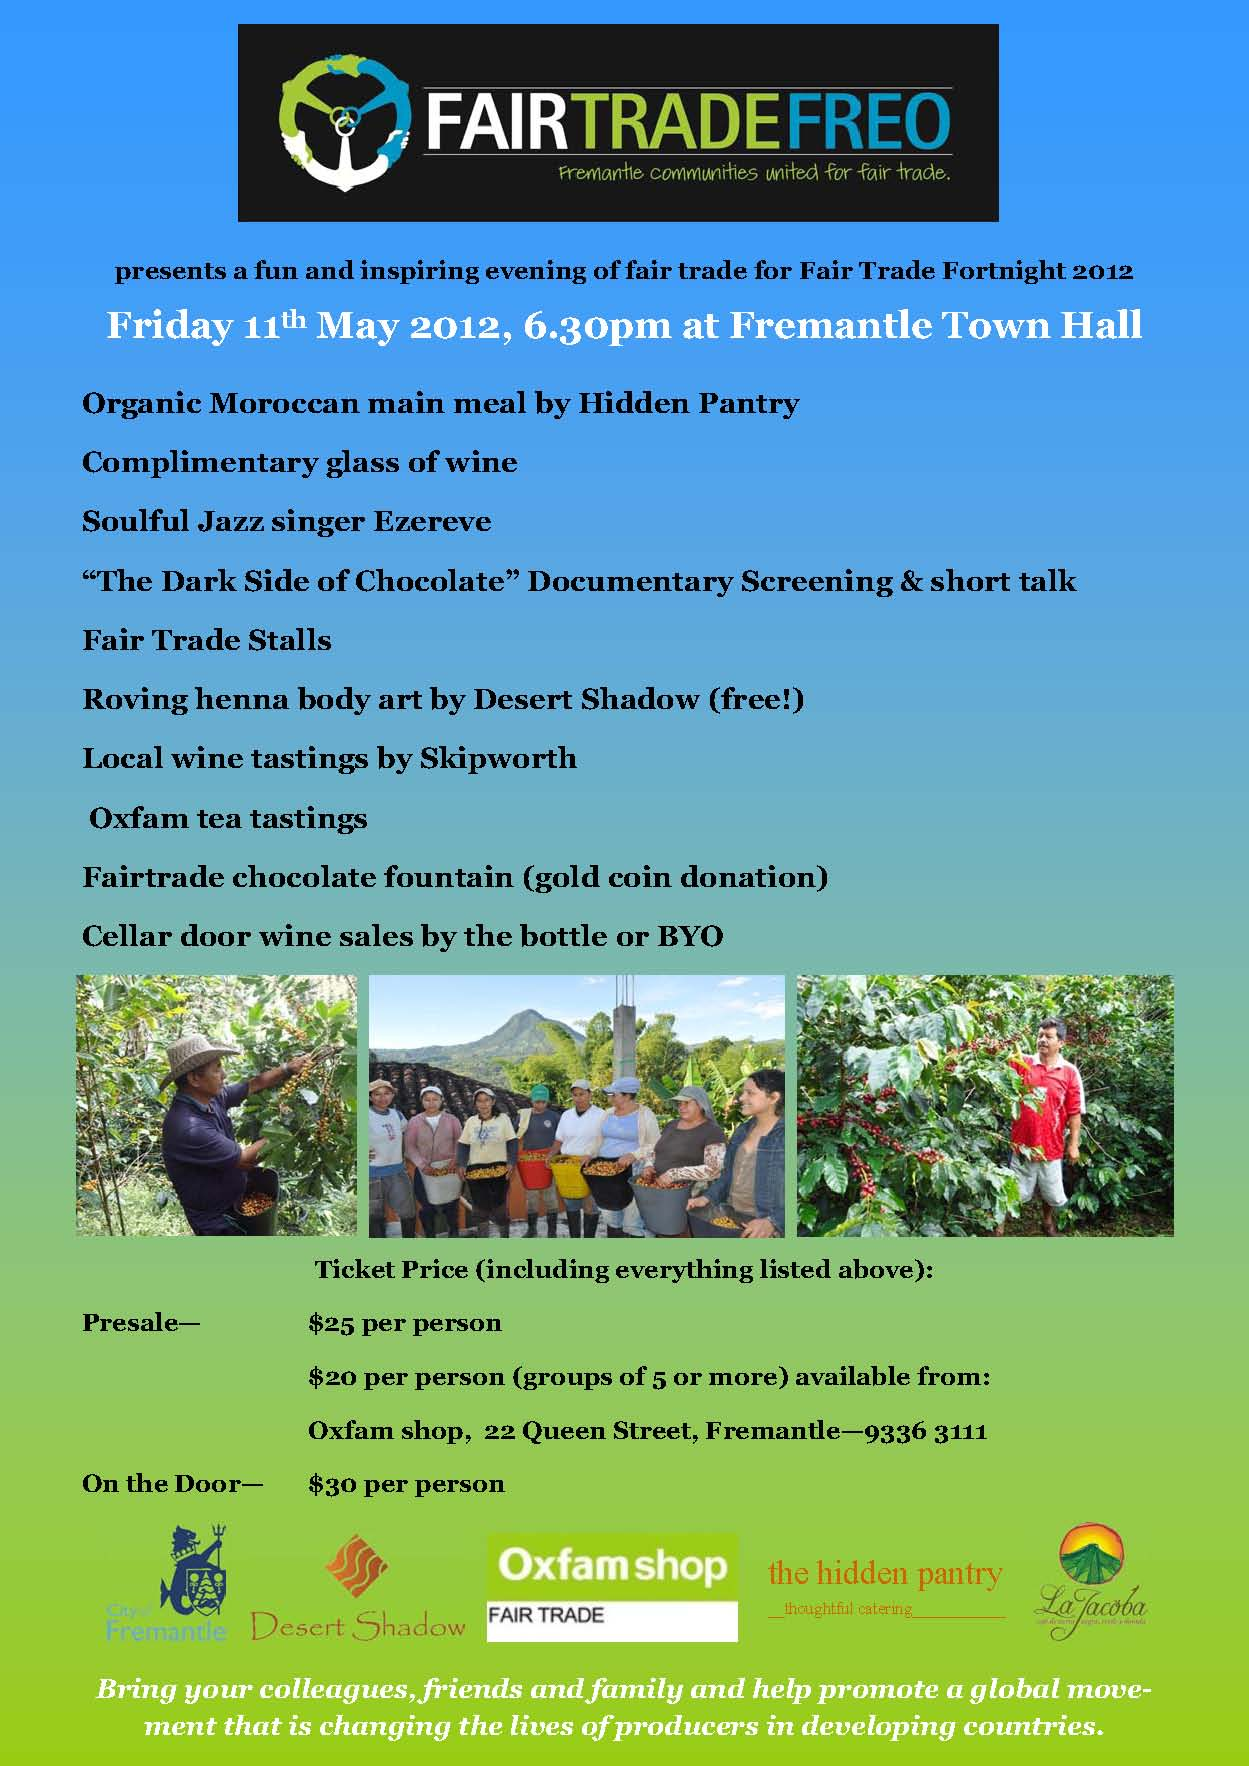 fair_trade_freo_event.jpg